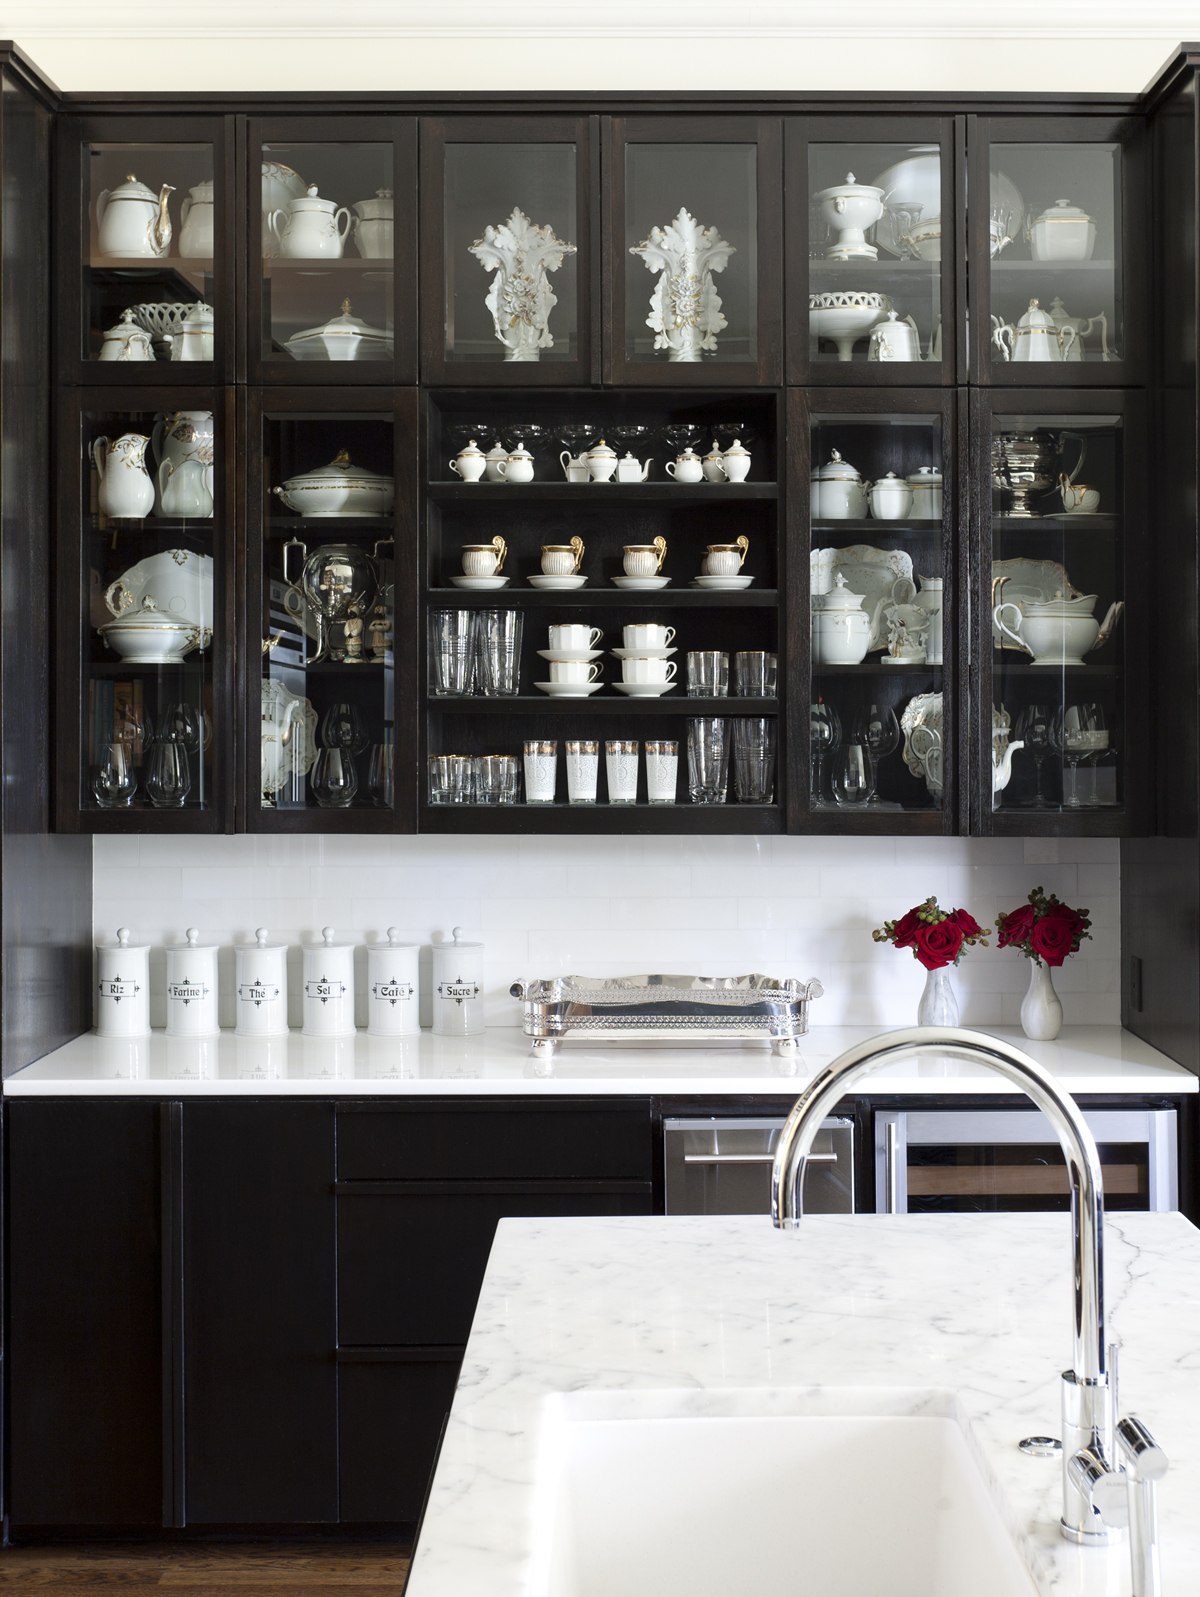 Bye bye white hello dark kitchen cabinets nbaynadamas for White or dark kitchen cabinets